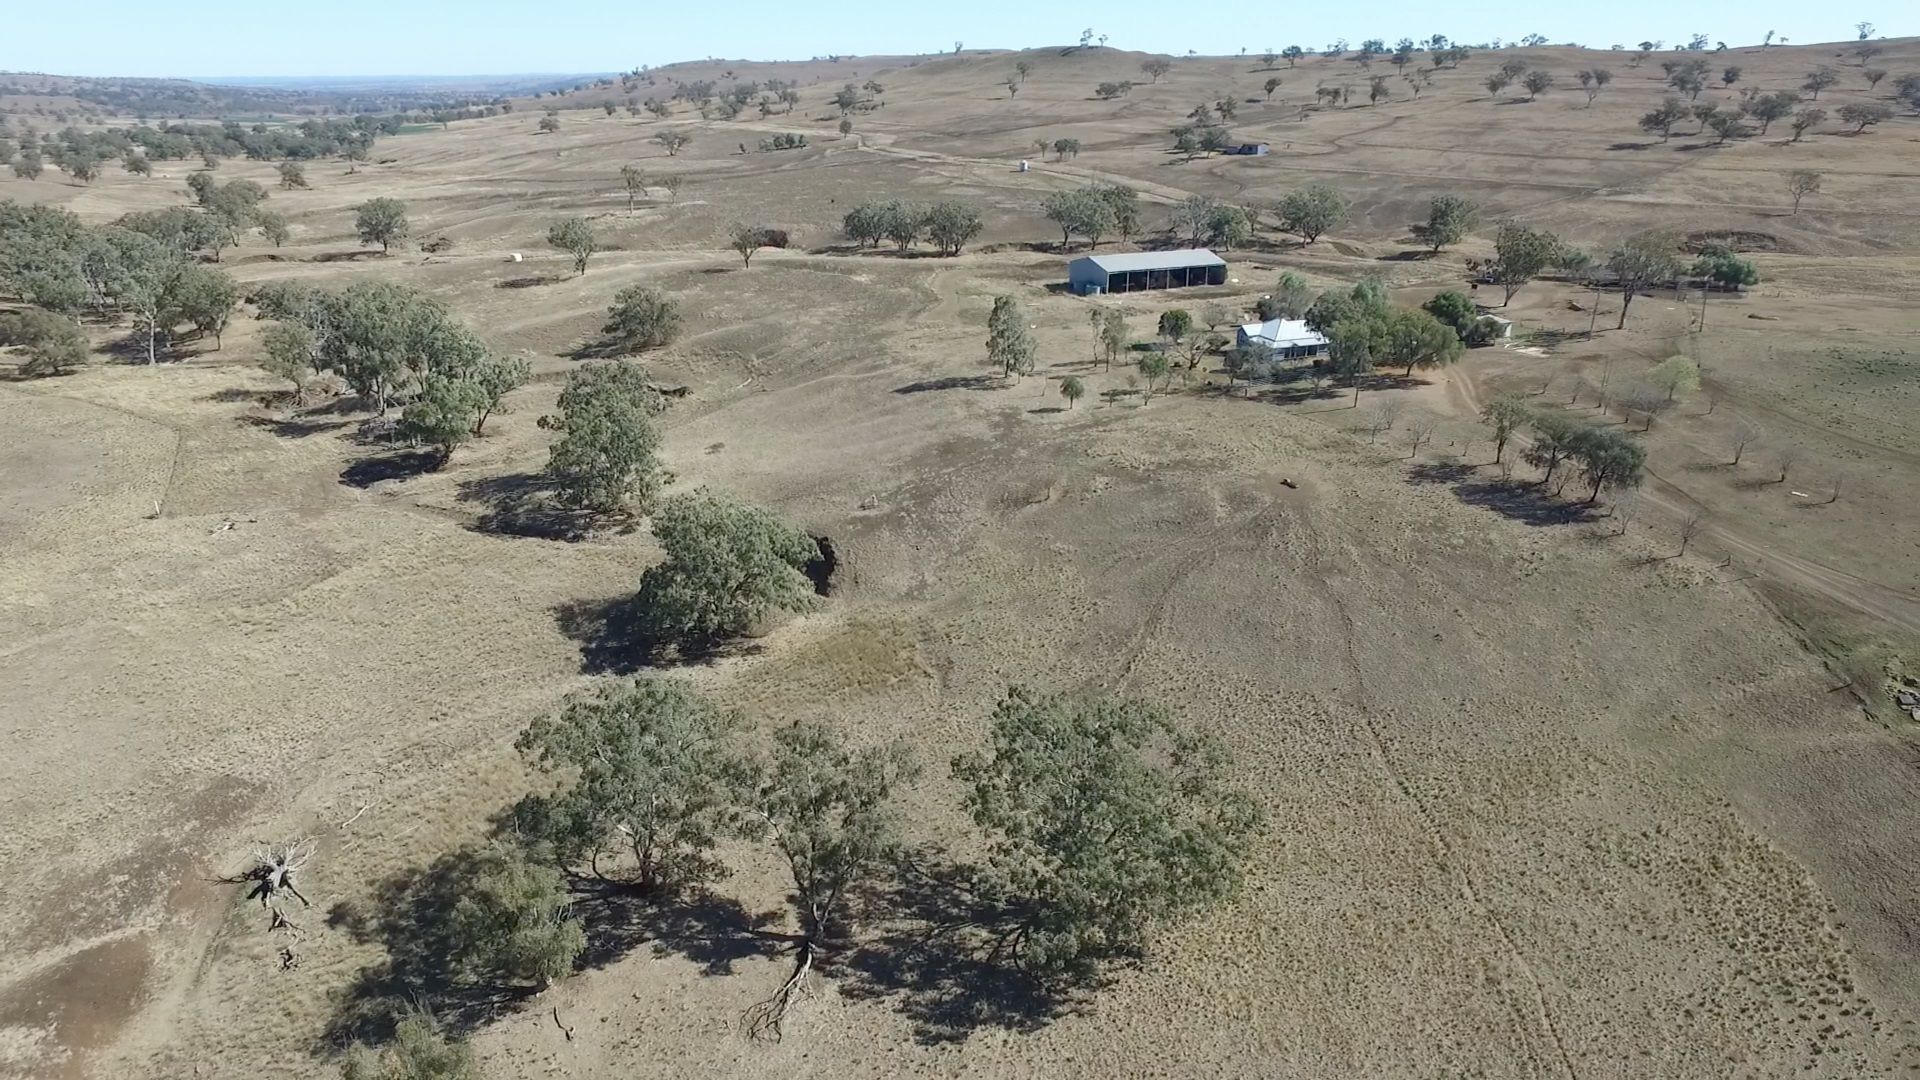 Sold property: Sold Price for 245 Sunnyside Road - Merriwa